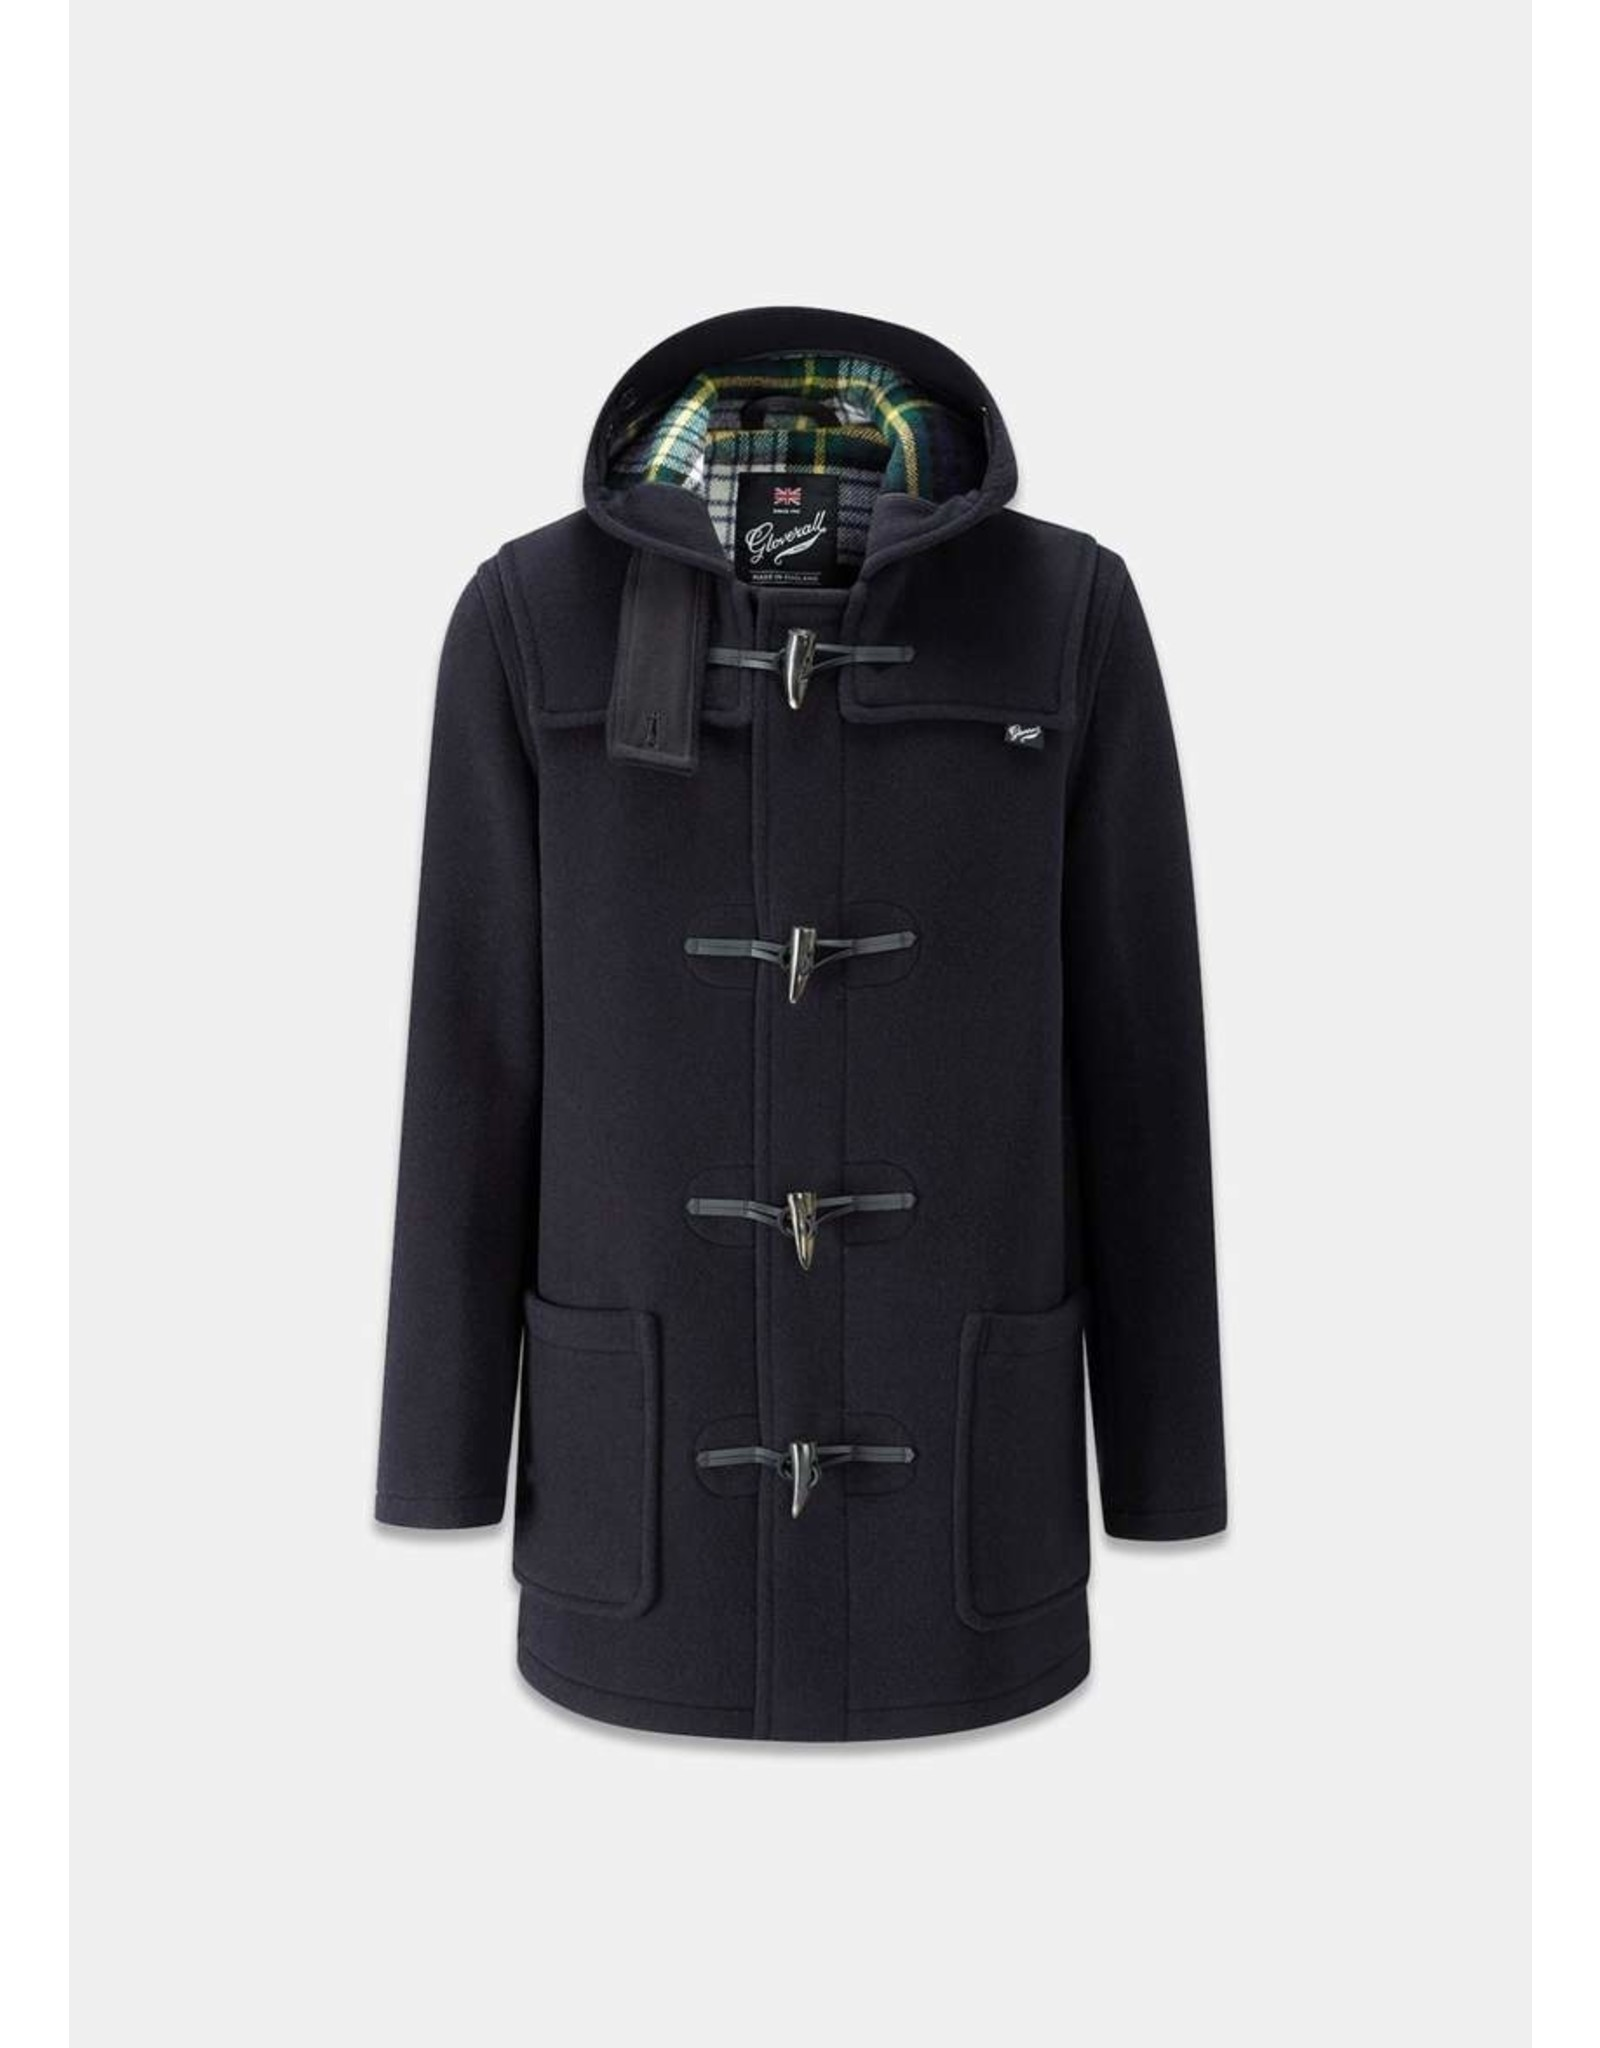 Gloverall Gloverall Mid Length Duffle Jacket